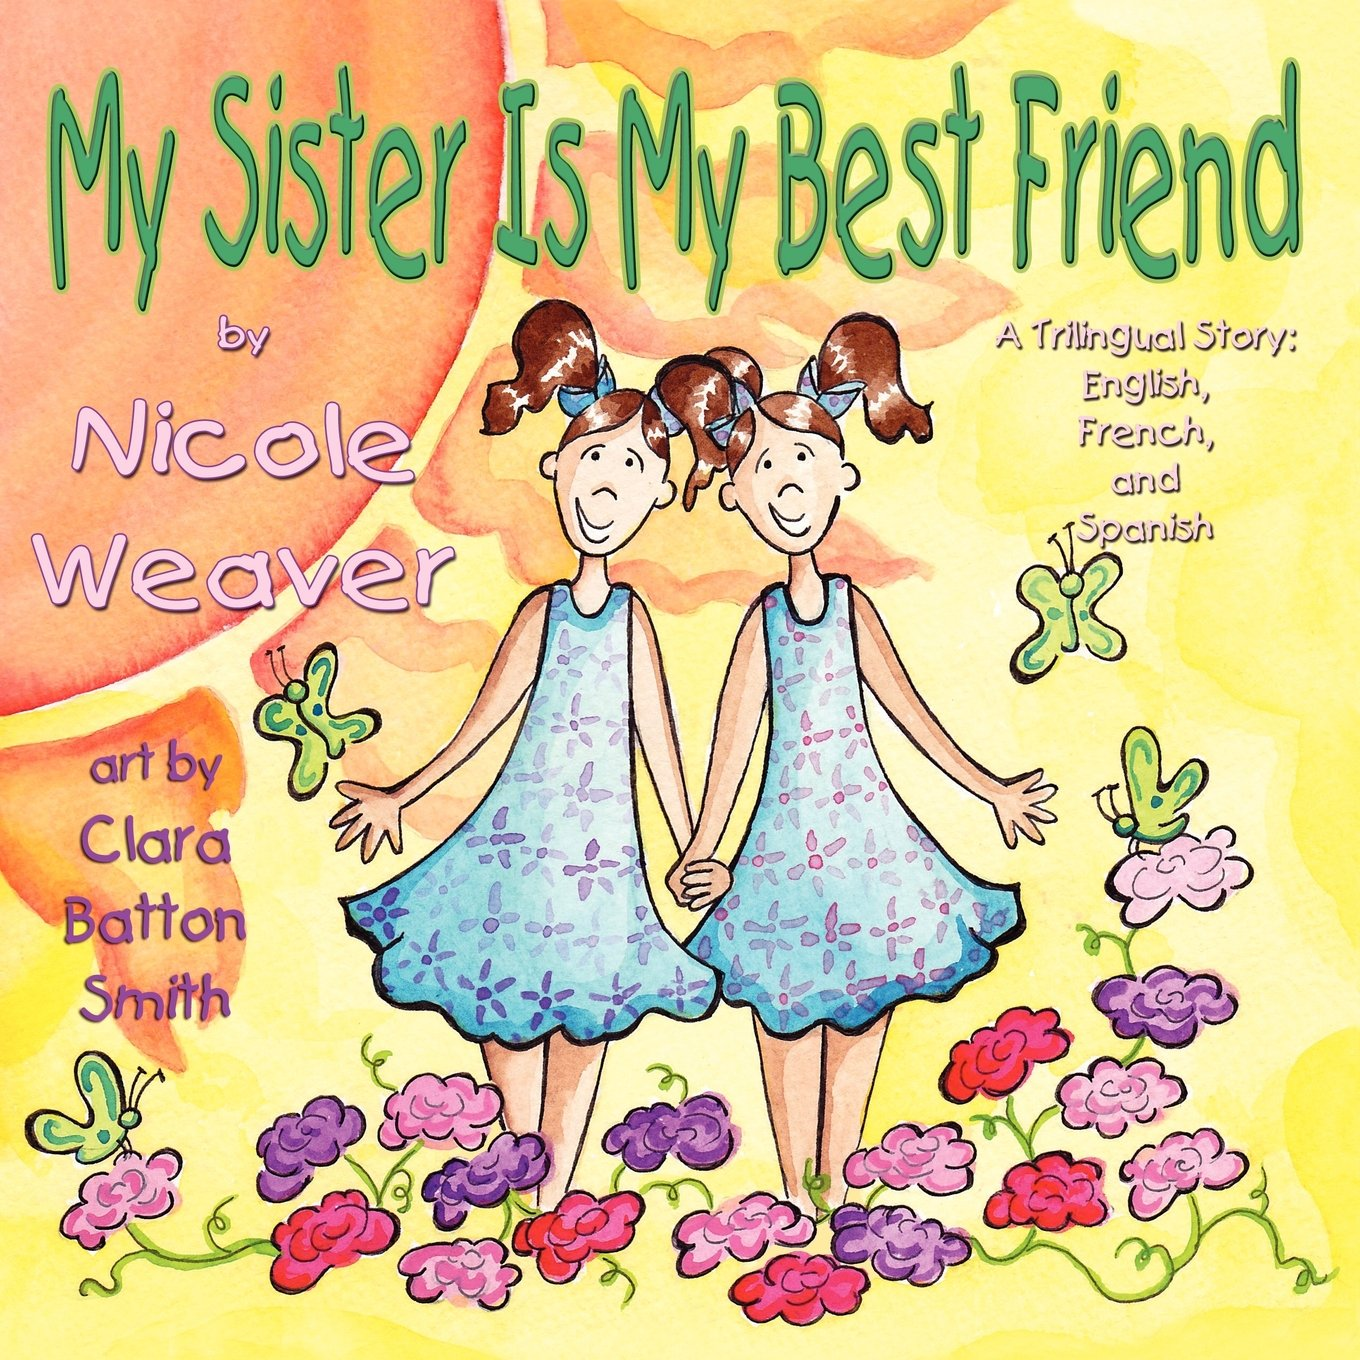 buy my sister is my best friend a trilingual story book online at  buy my sister is my best friend a trilingual story book online at low prices in my sister is my best friend a trilingual story reviews ratings